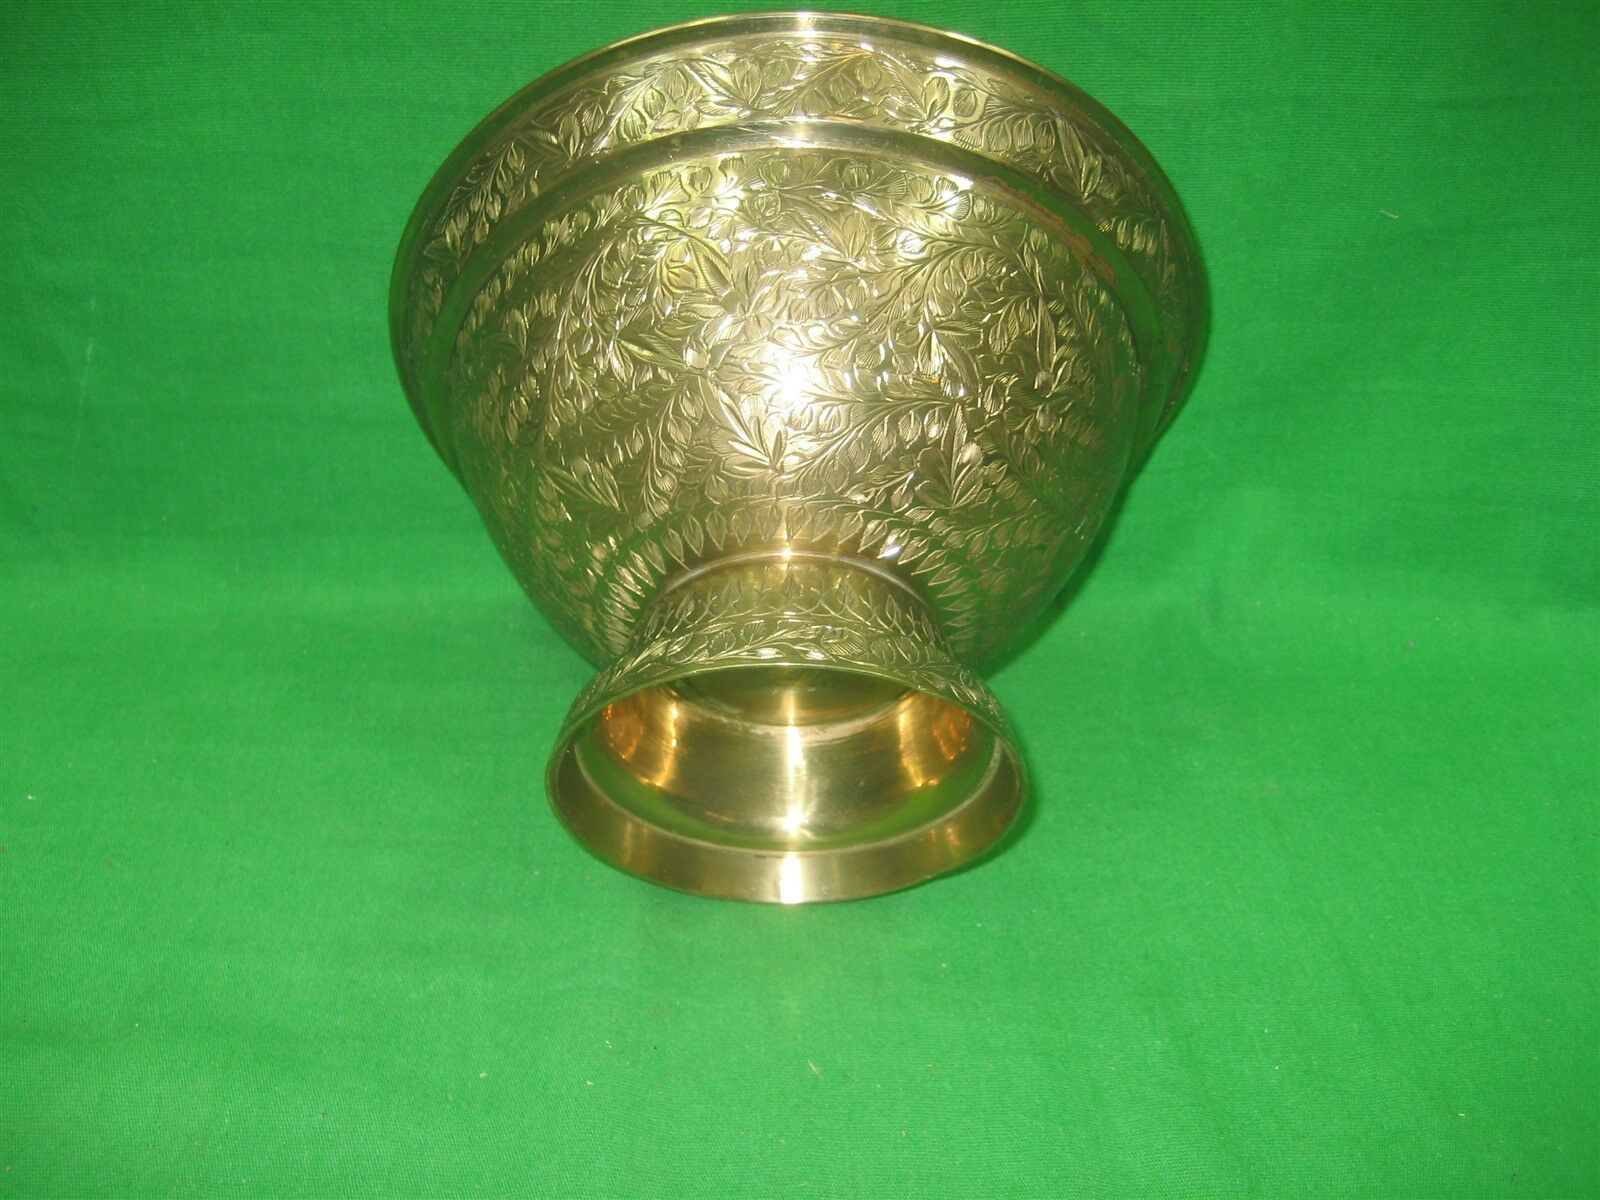 """Vintage Brass Etched Bowl Centerpiece on Pedestal Made In India Ornate 5"""" Tall image 4"""